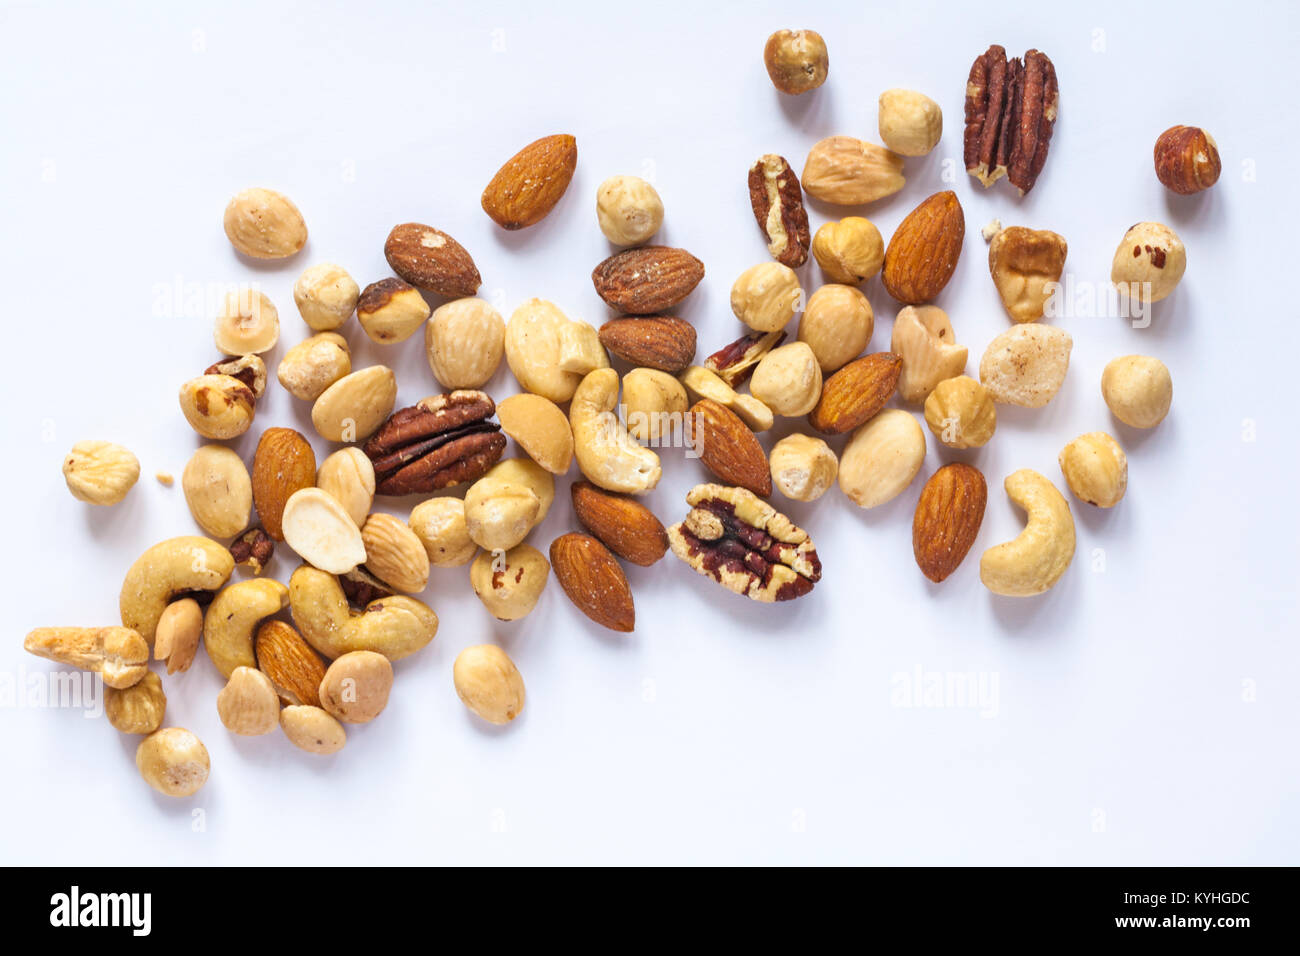 Tesco finest roasted nut selection spread out isolated on white background. Mixed roasted nuts delicately seasoned - Stock Image